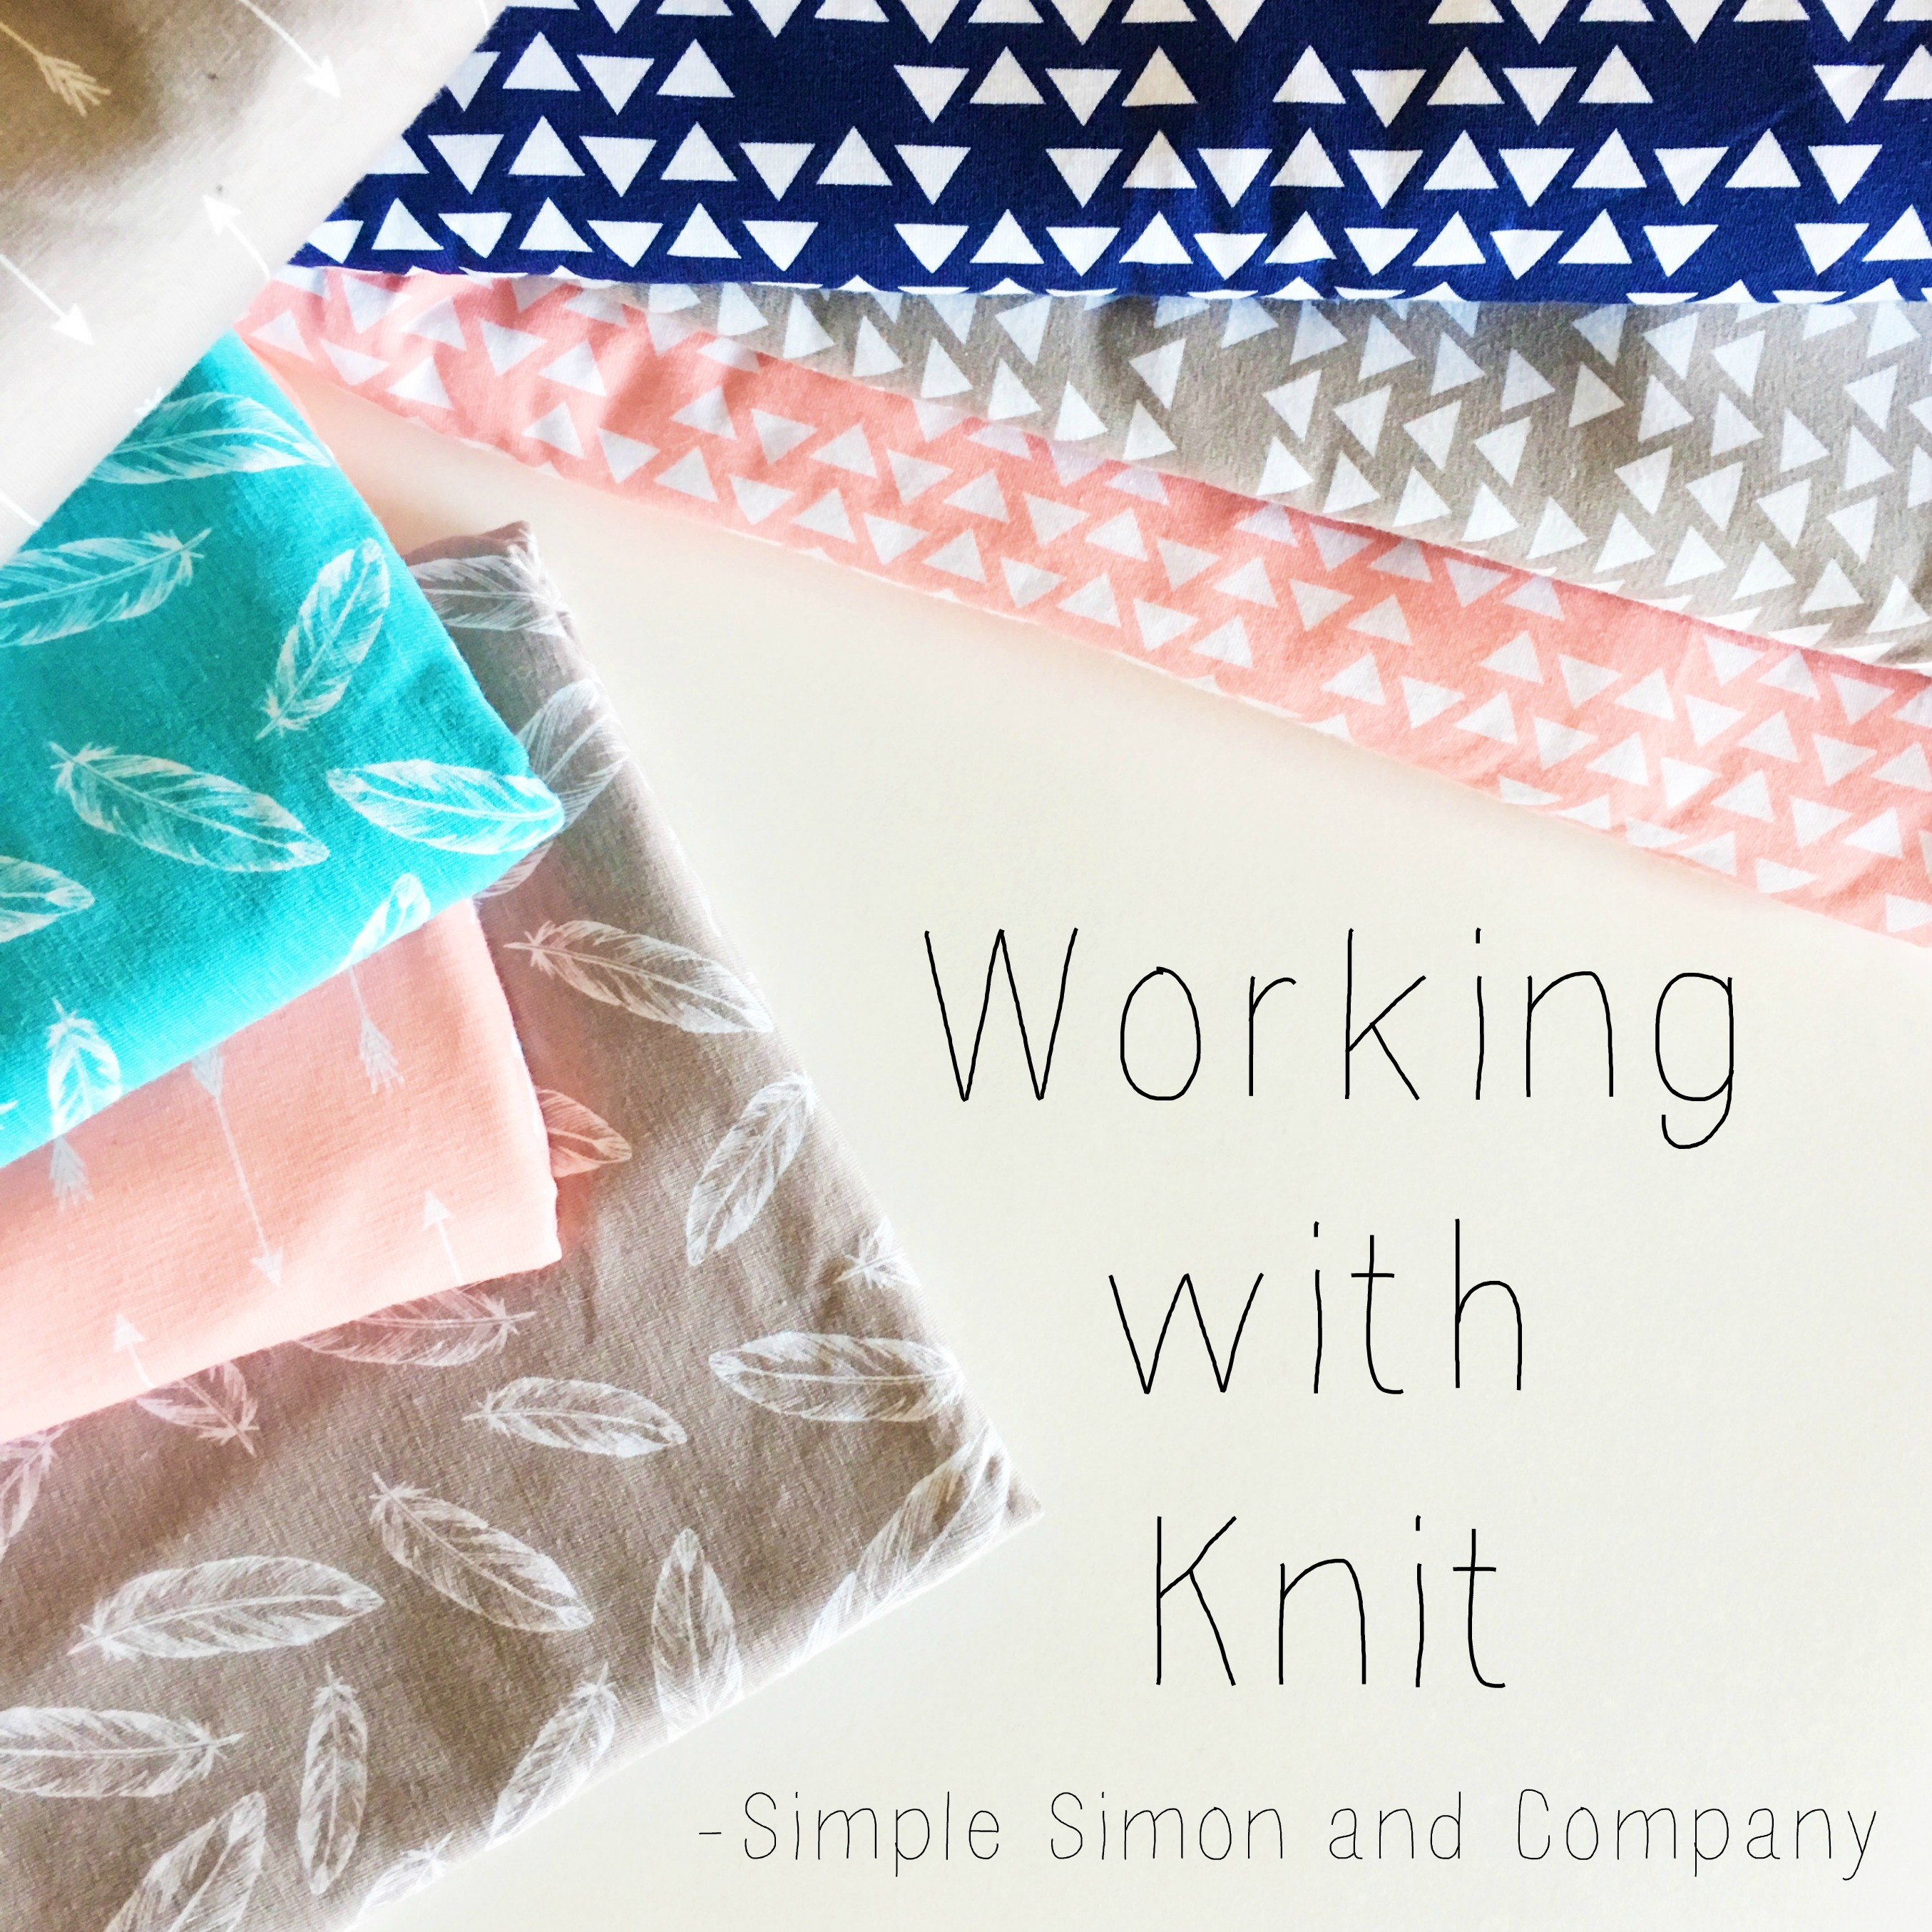 Working with knit